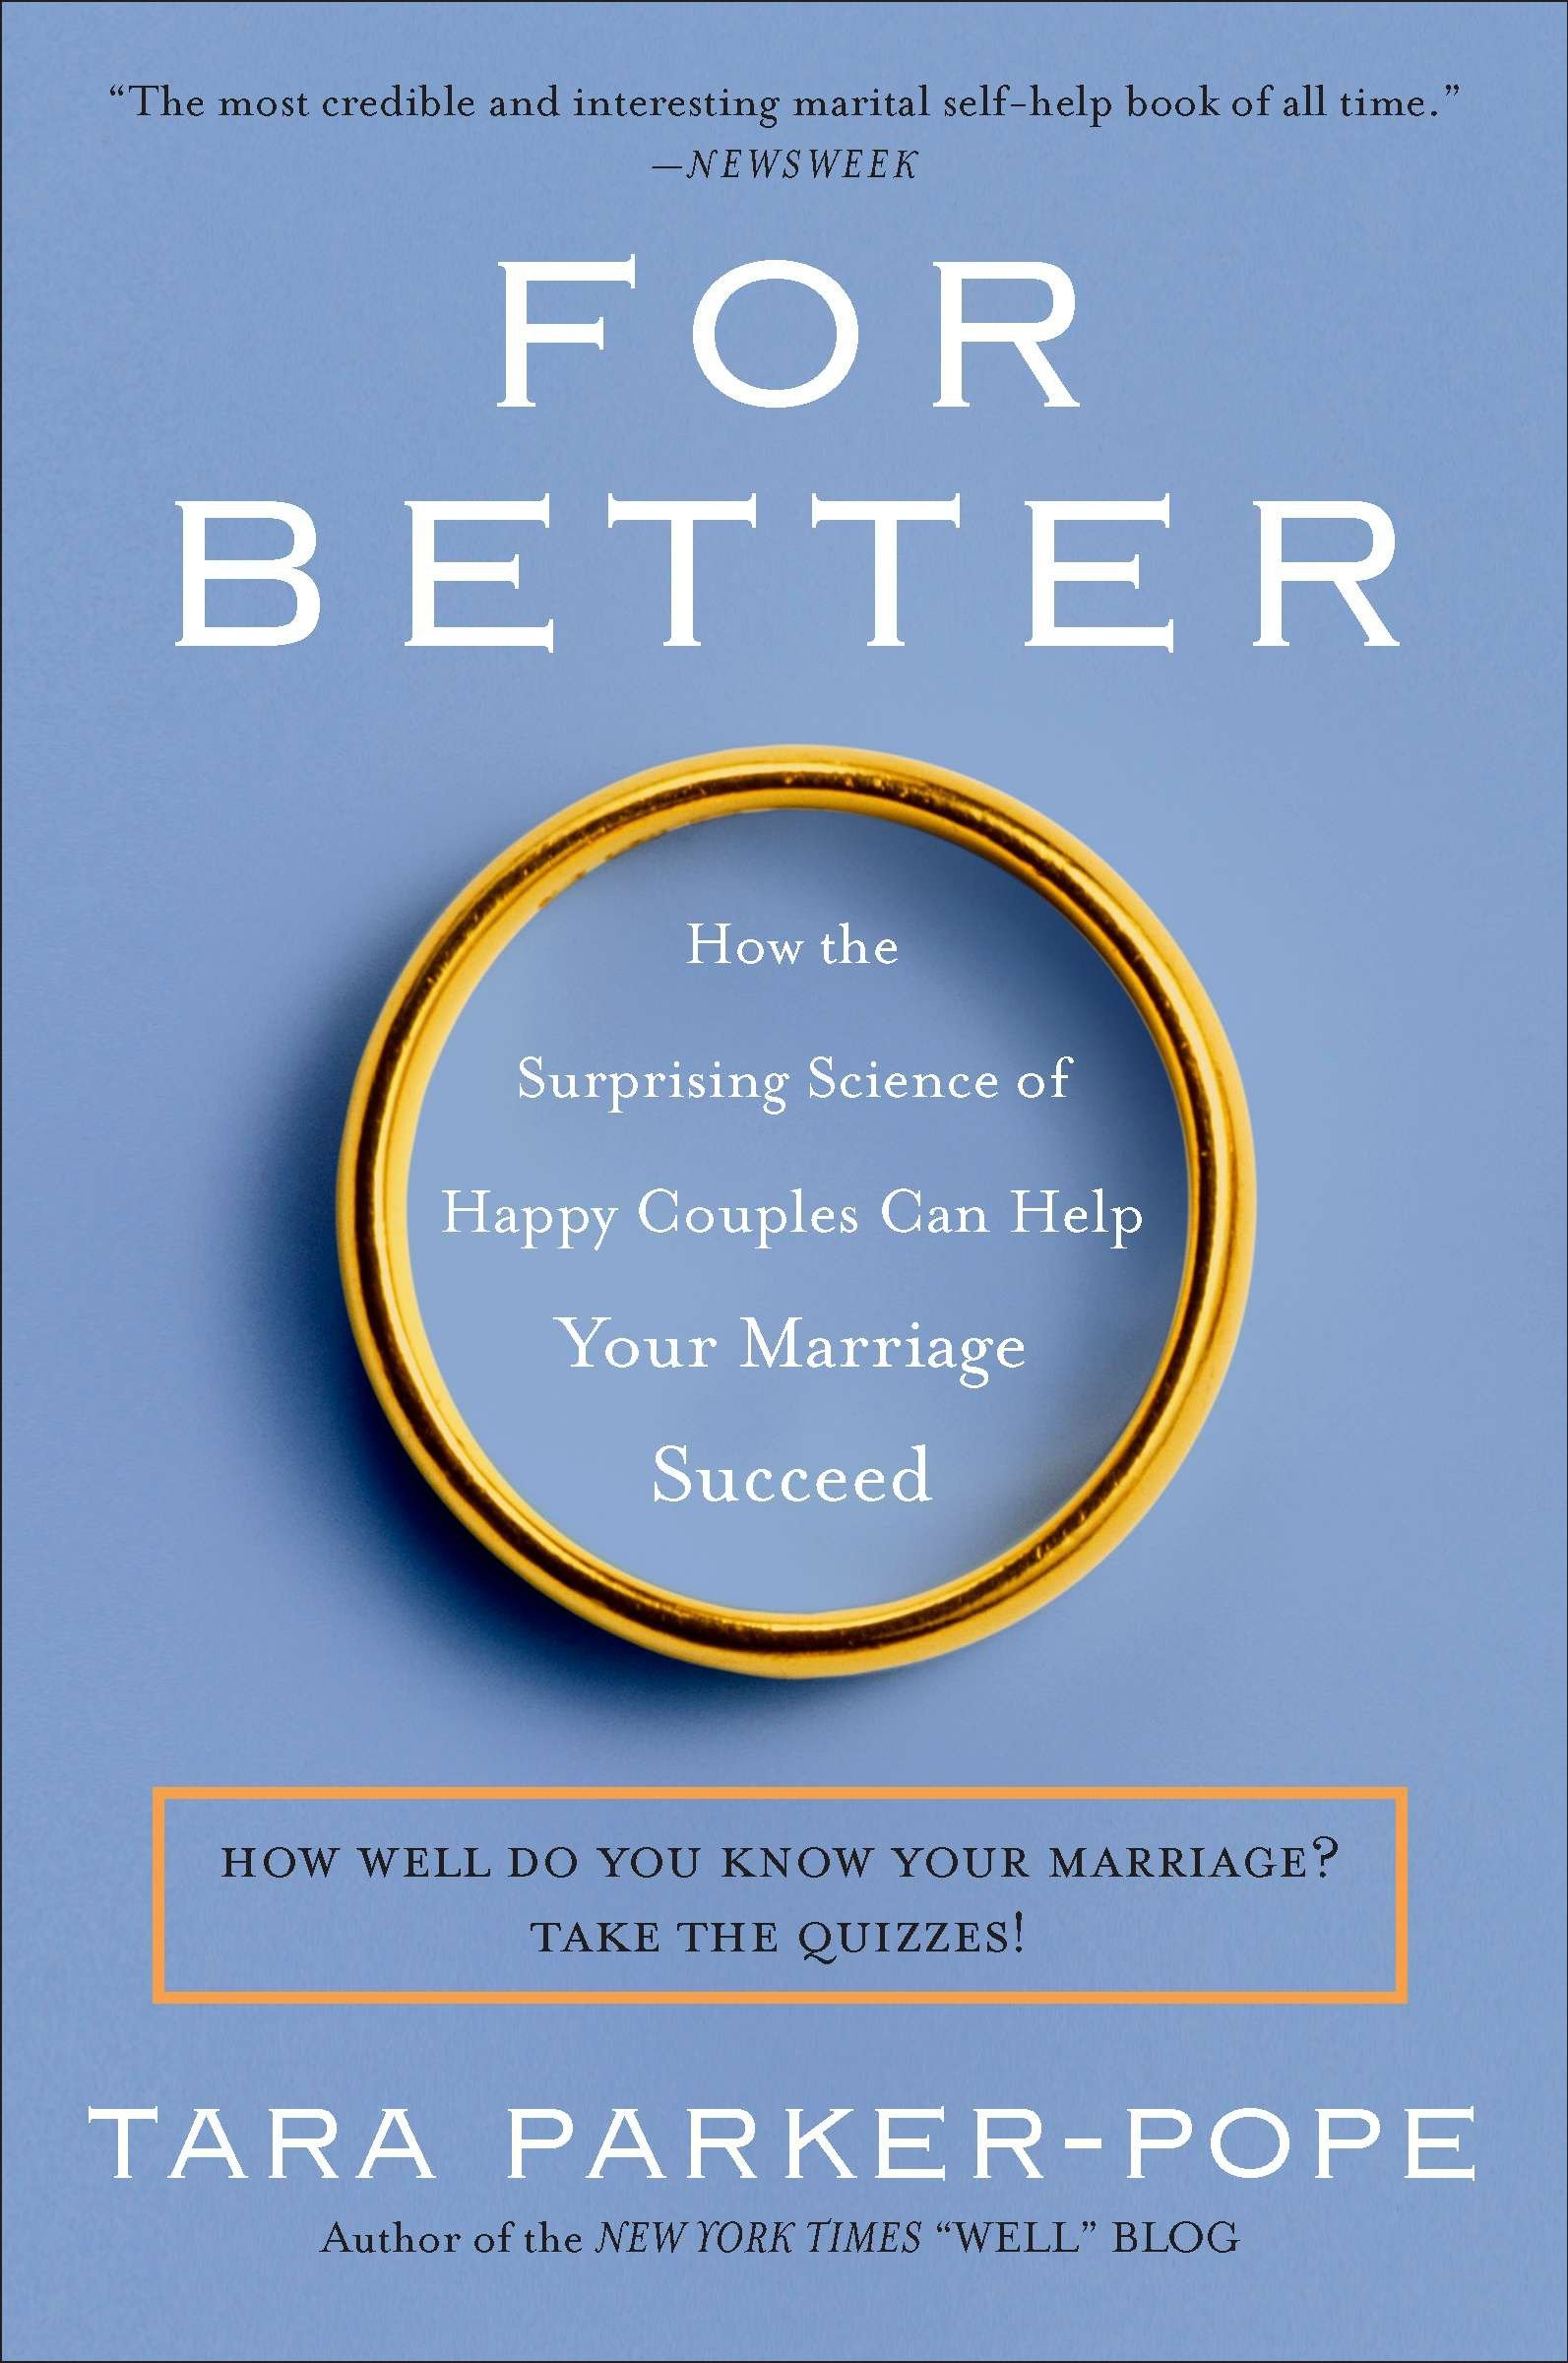 For Better: How the Surprising Science of Happy Couples Can